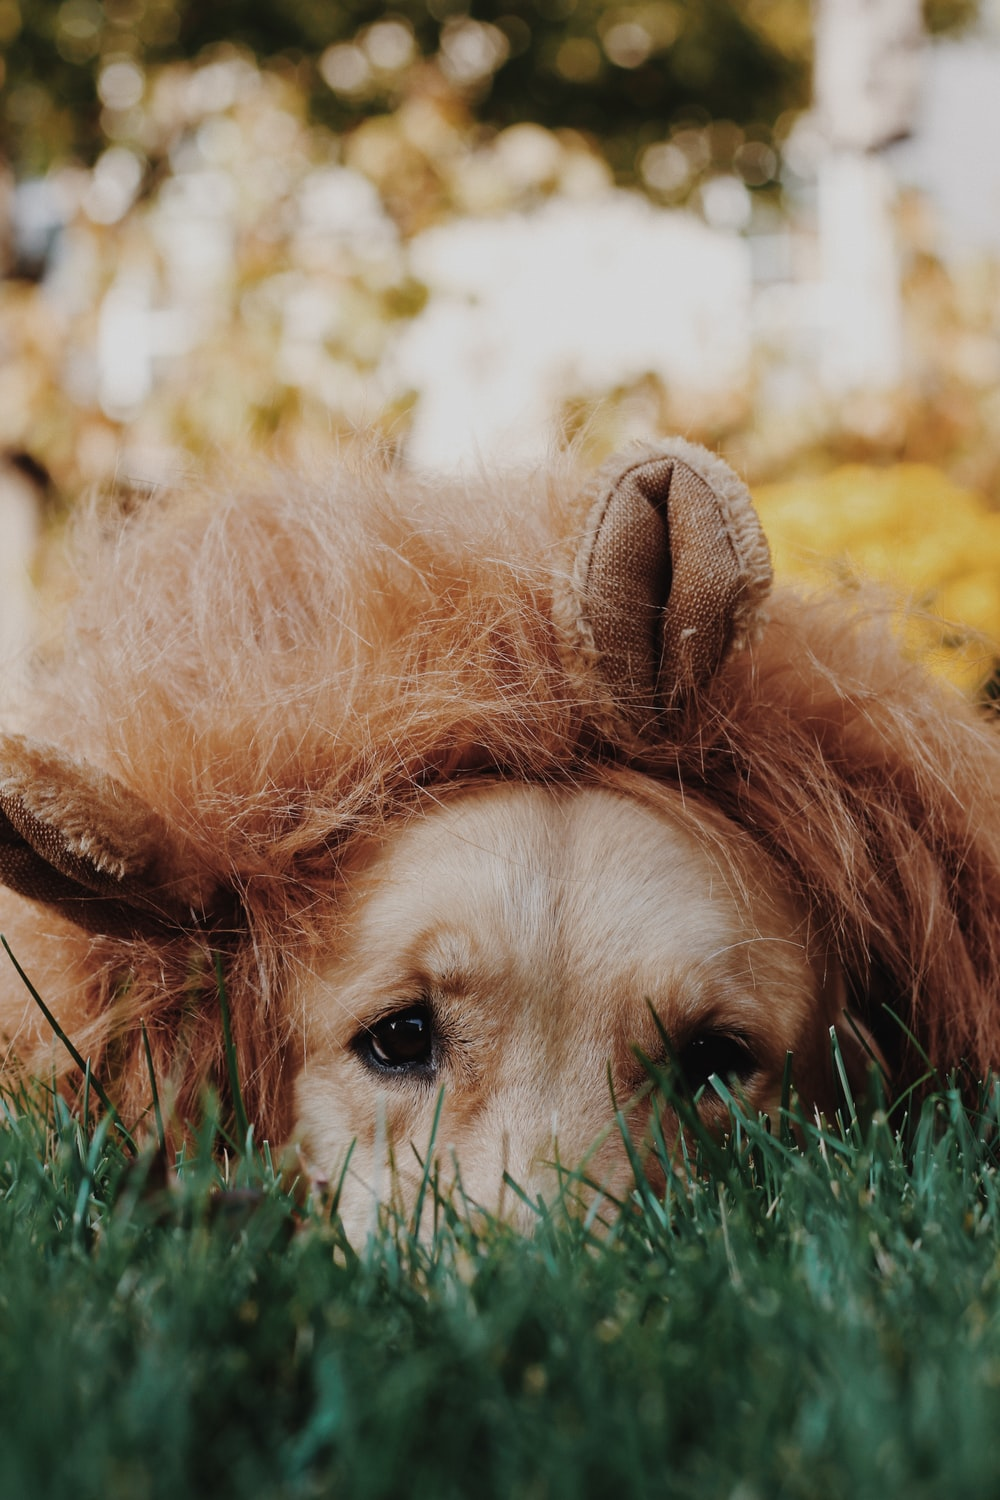 brown long haired dog lying on green grass during daytime